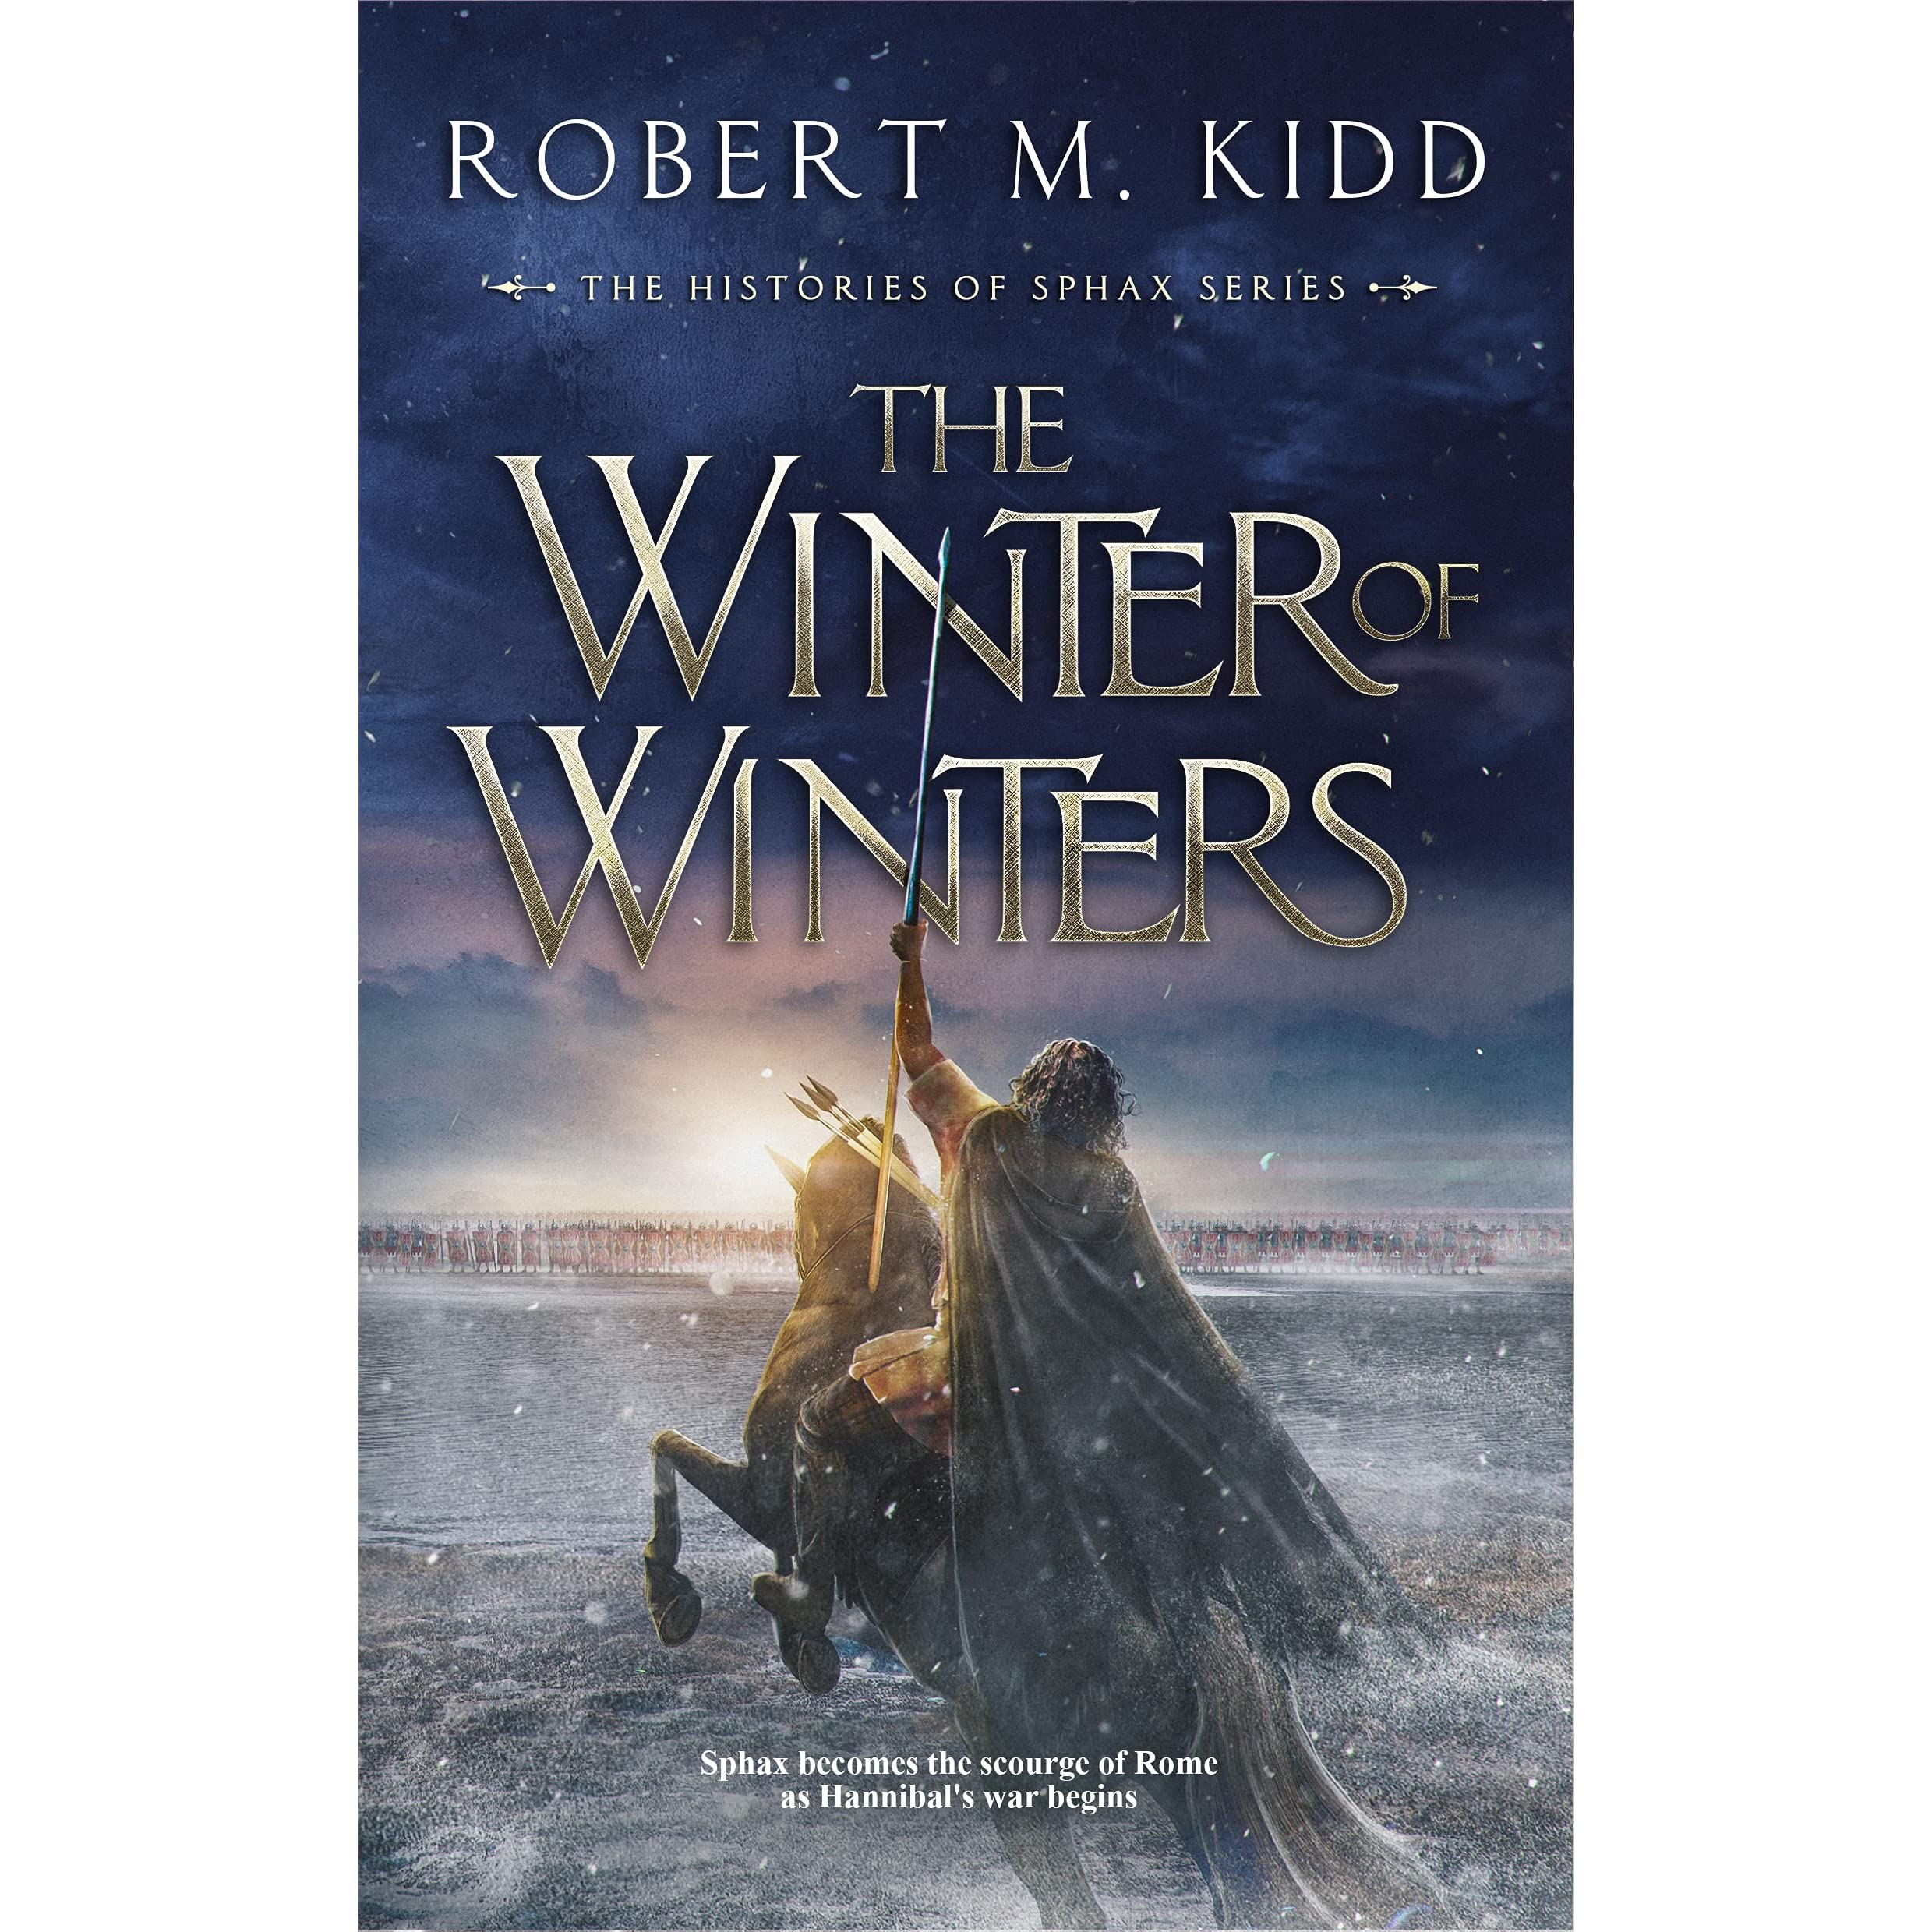 The Winter of Winters: Sphax becomes the scourge of Rome as Hannibal's war  begins by Robert M. Kidd